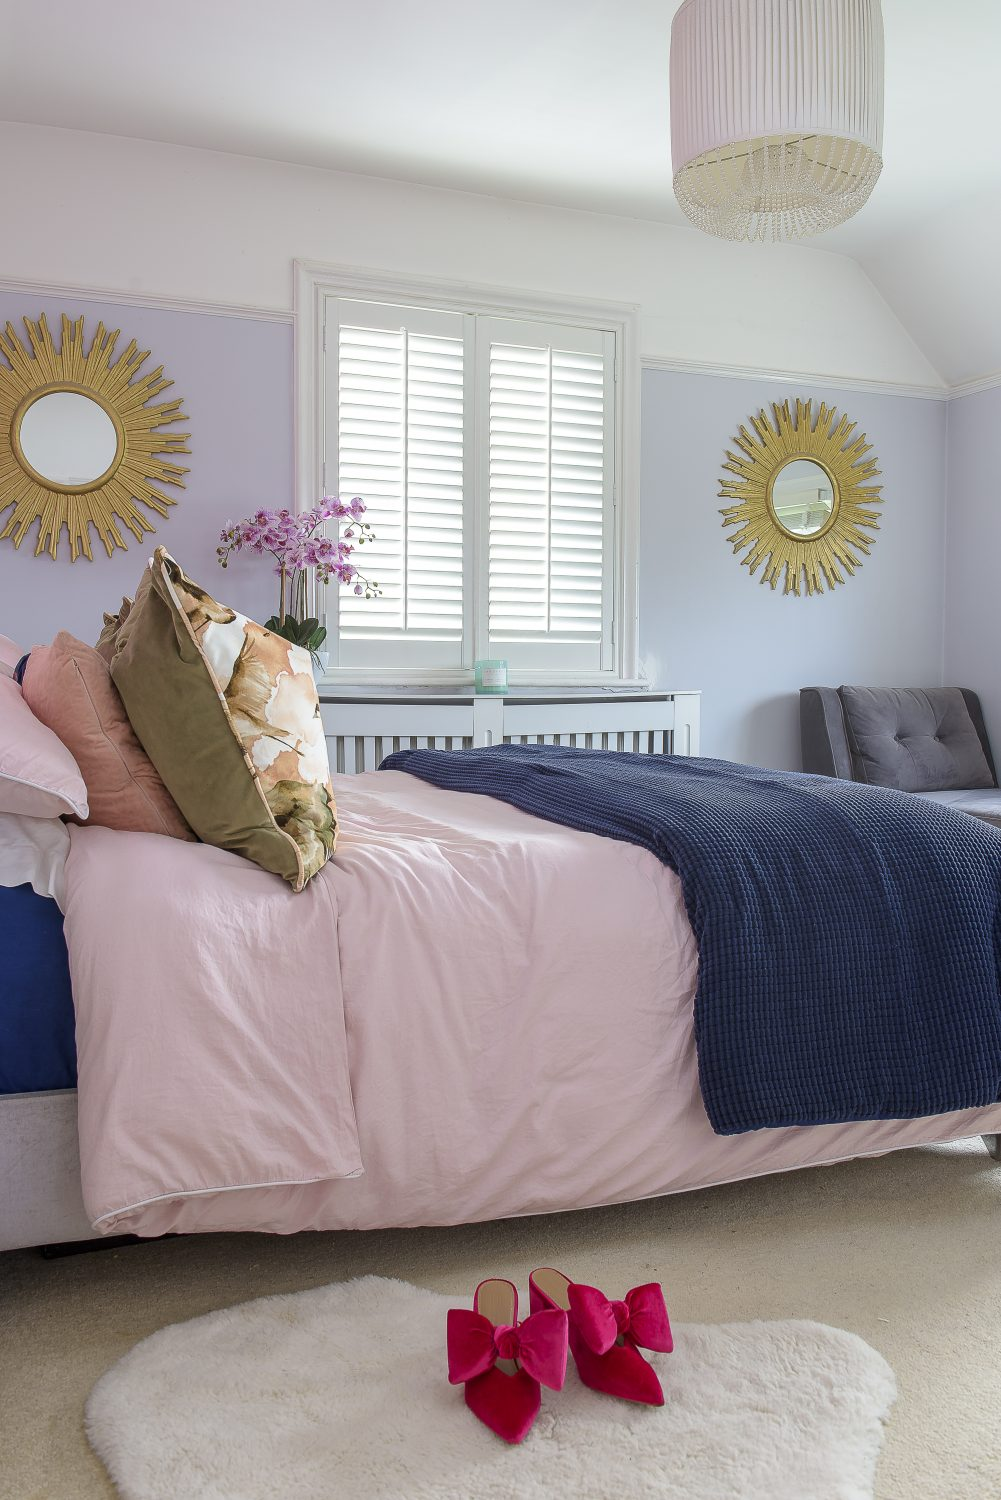 The master bedroom breaks from Cat's signature colour palette with soft lilac walls and accents of navy